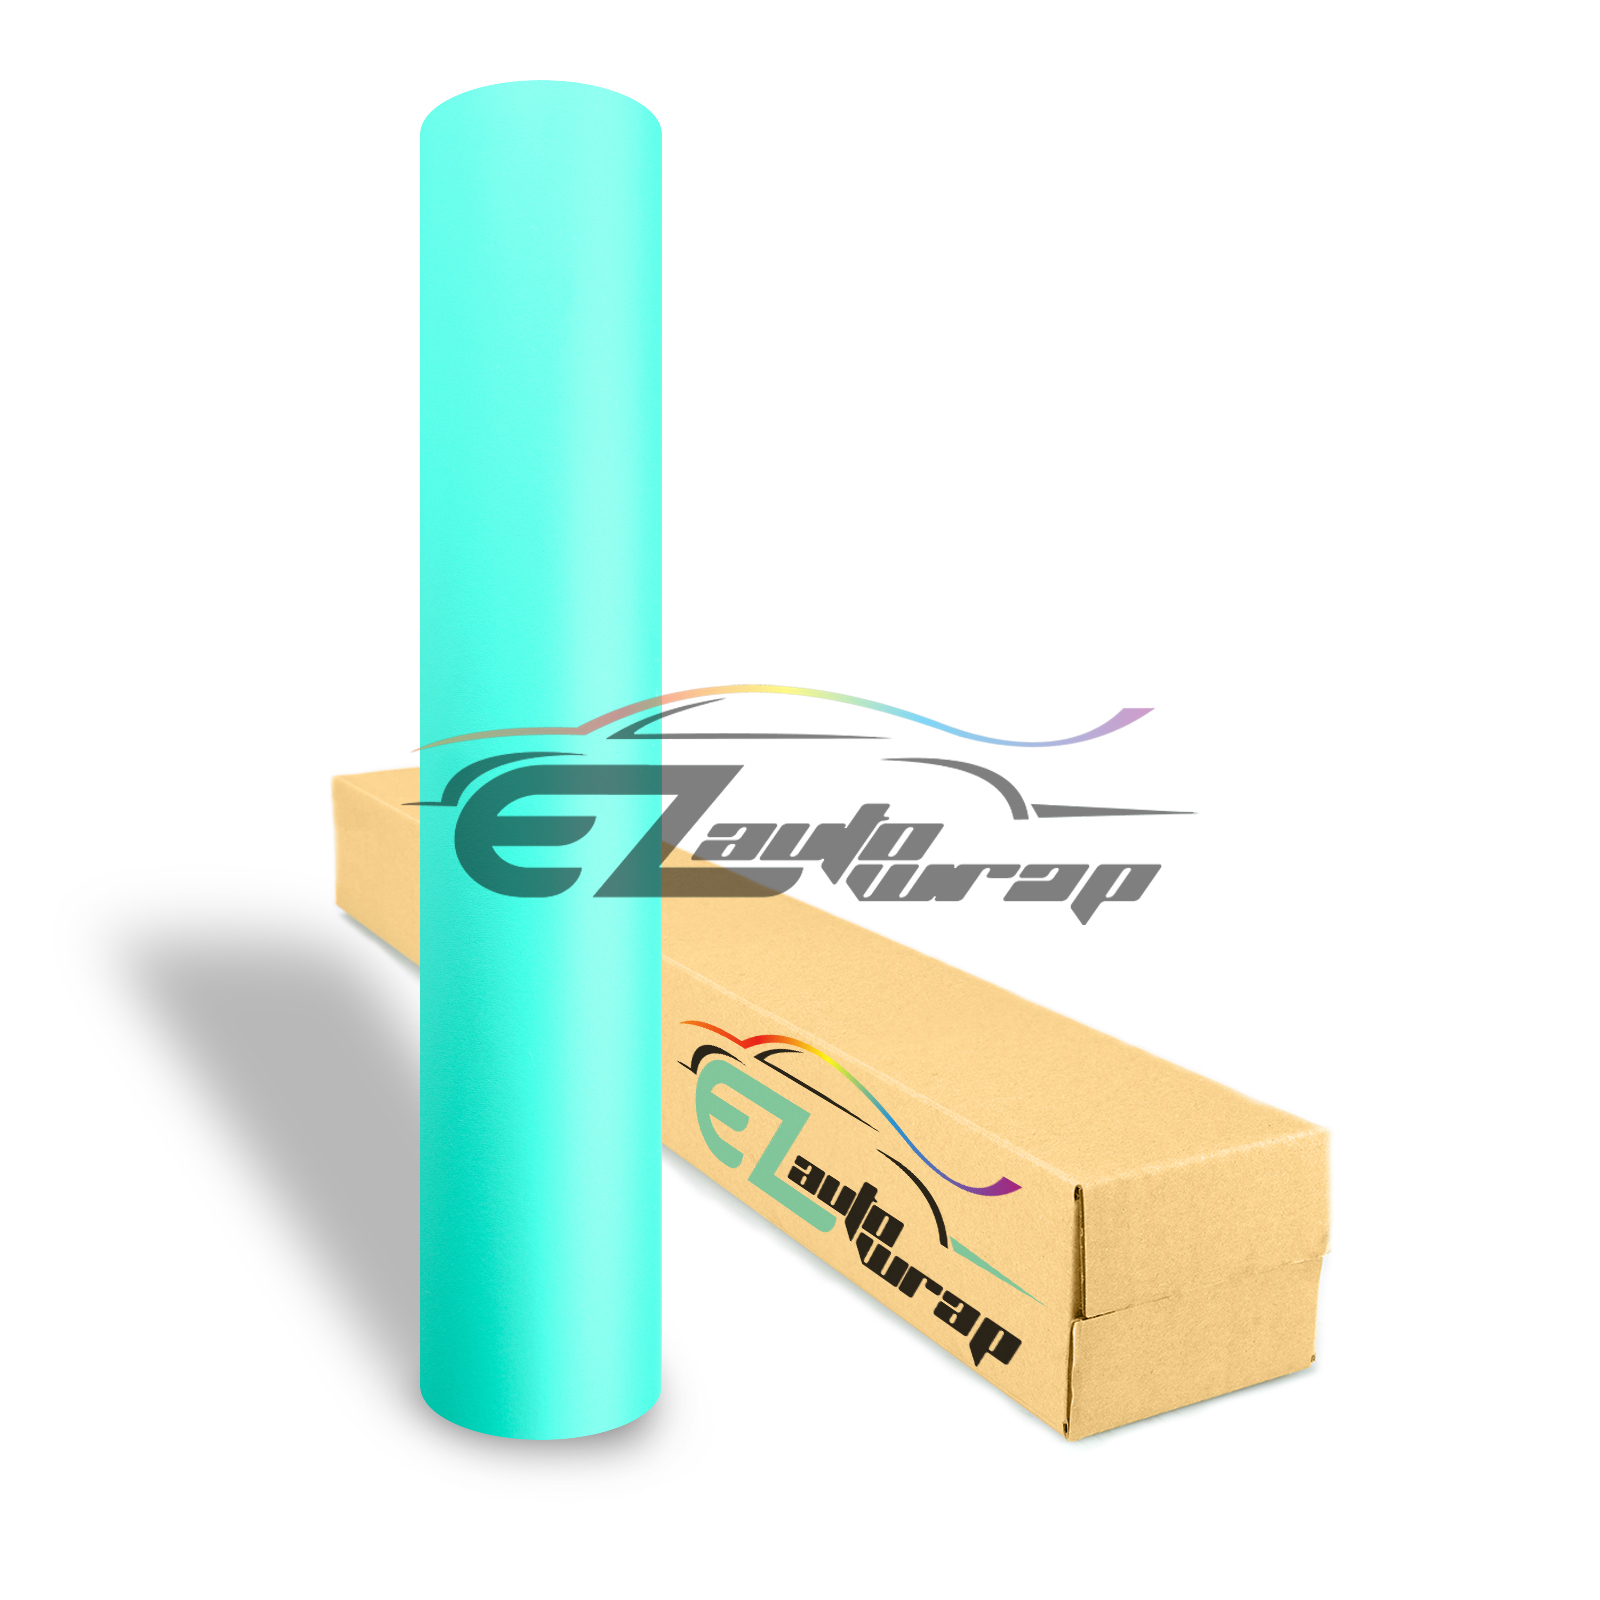 EZAUTOWRAP Matte Tiffany Blue Teal Car Vinyl Wrap Vehicle Sticker Decal Film Sheet Peel And Stick With Air Release Technology Decoration Wallpaper